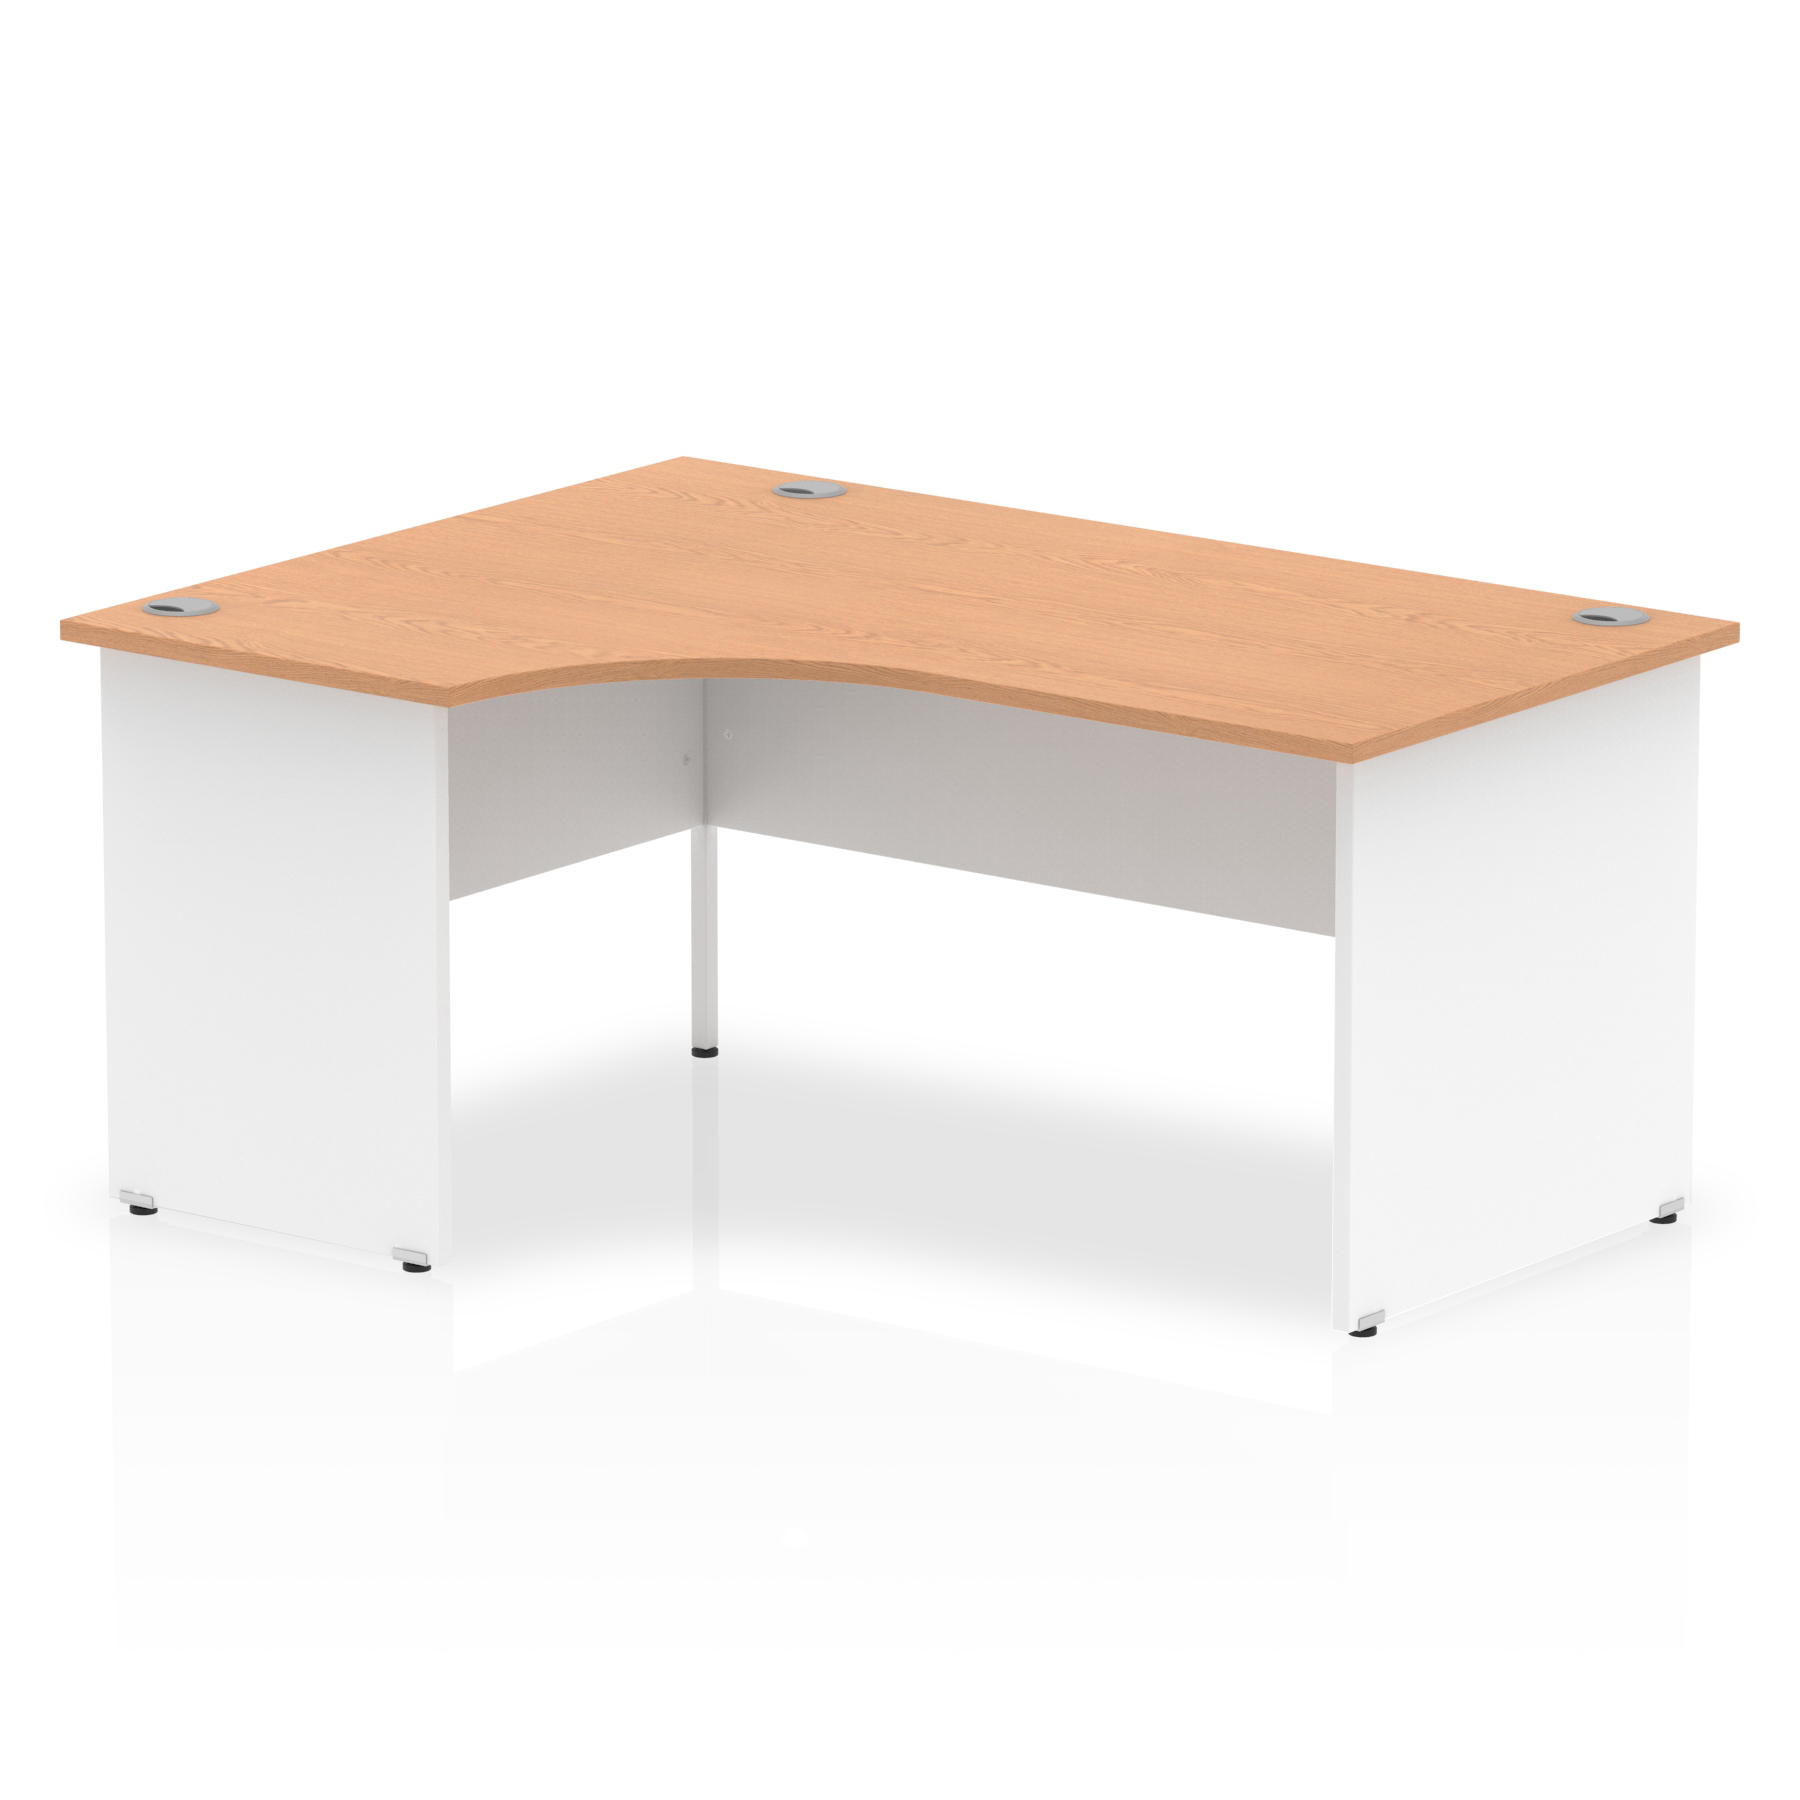 Trexus Desk Radial Left Hand Panel End 1600x800mm Oak Top White Panels Ref TT000029